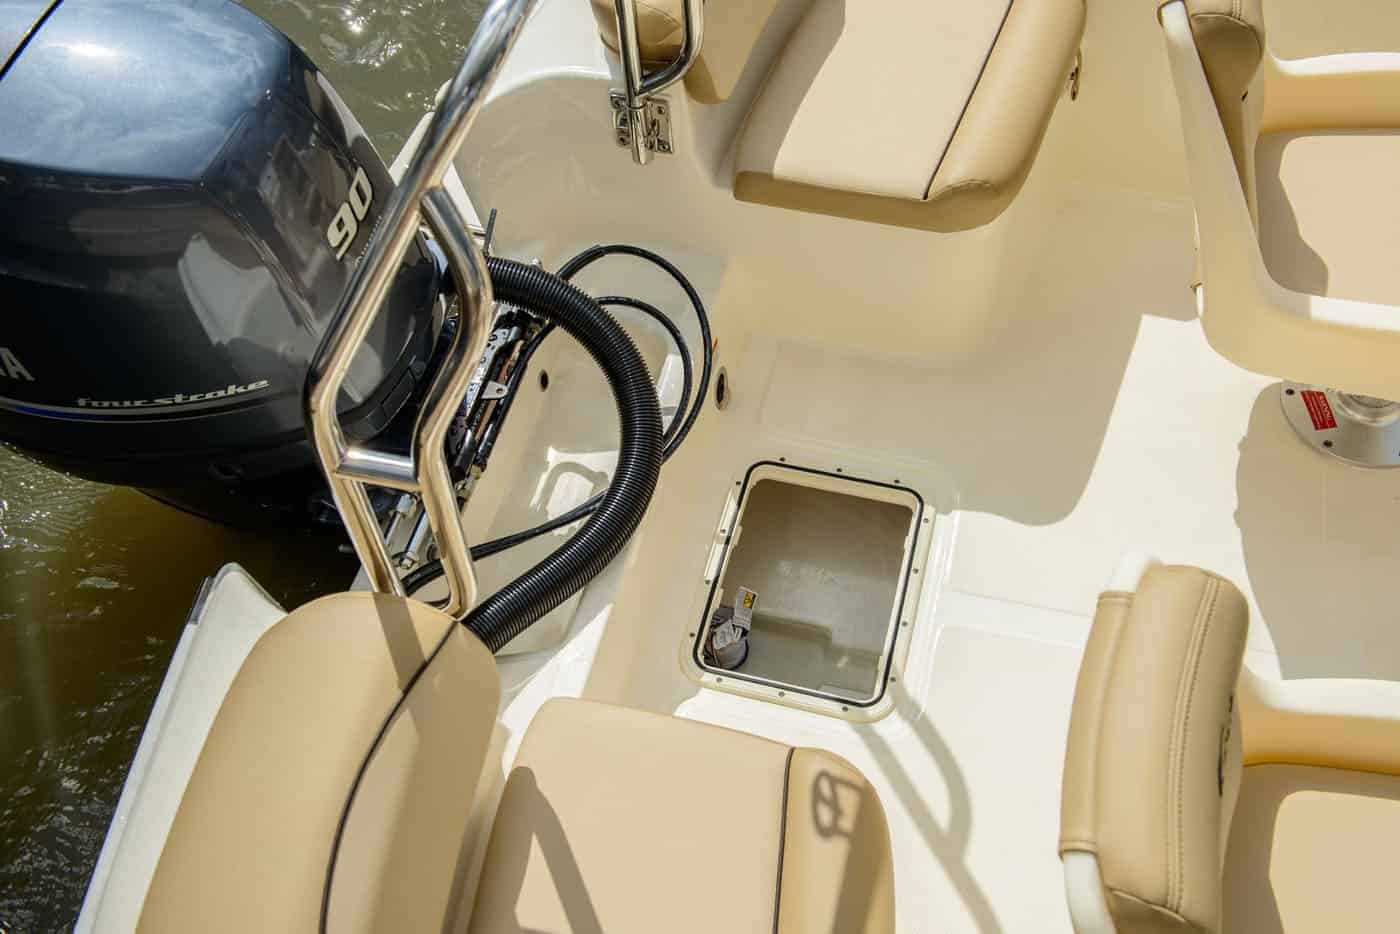 175SD transom access hatch